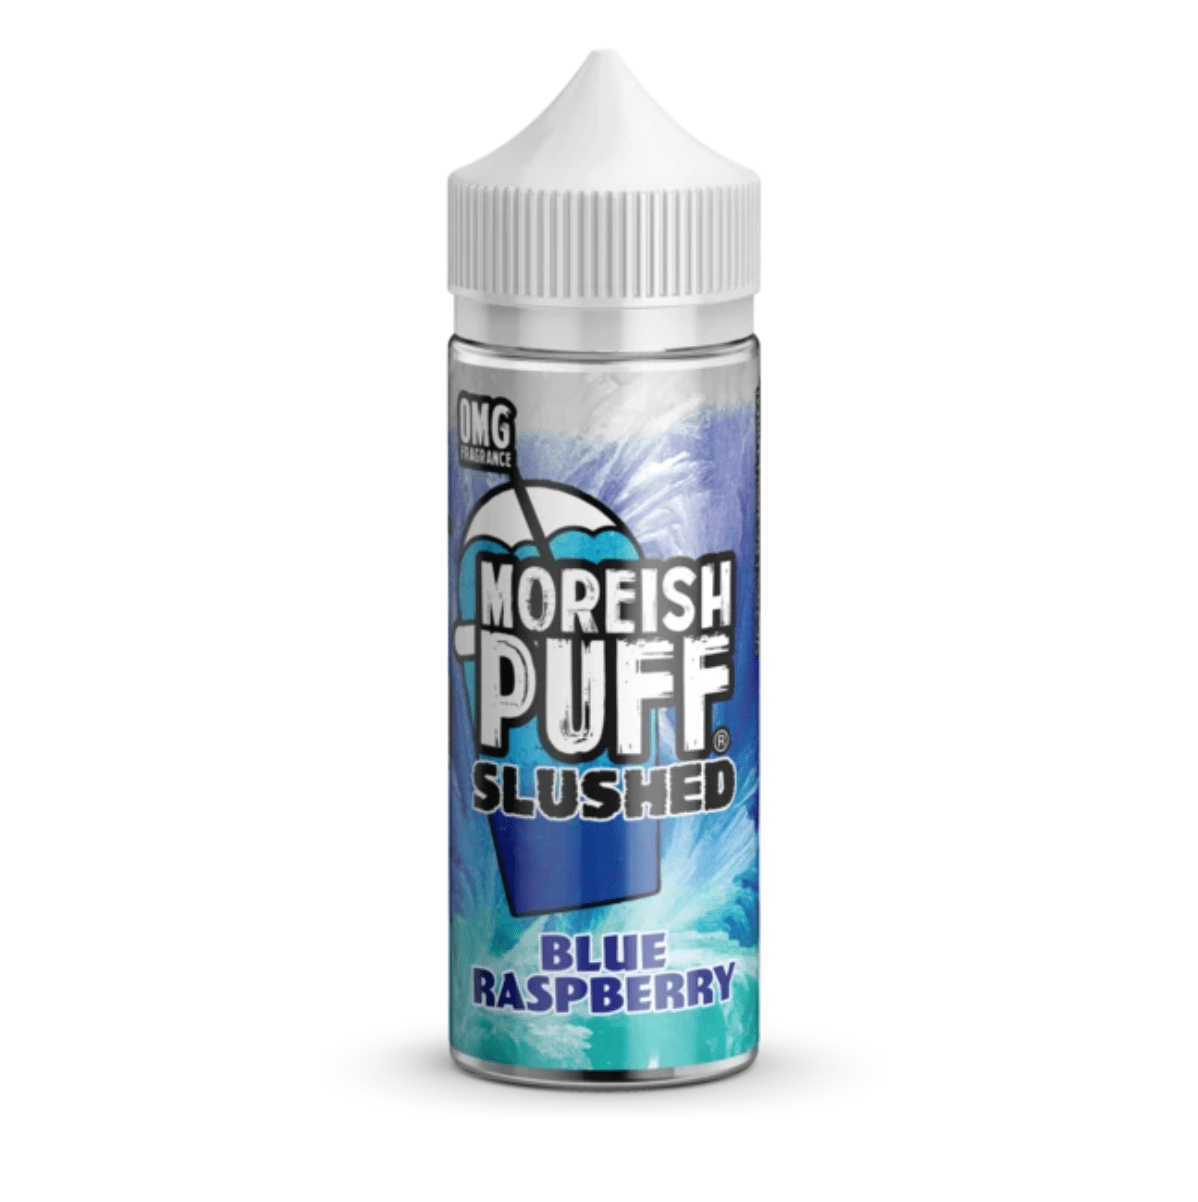 Blue Raspberry Slushed 100ml – £2.49